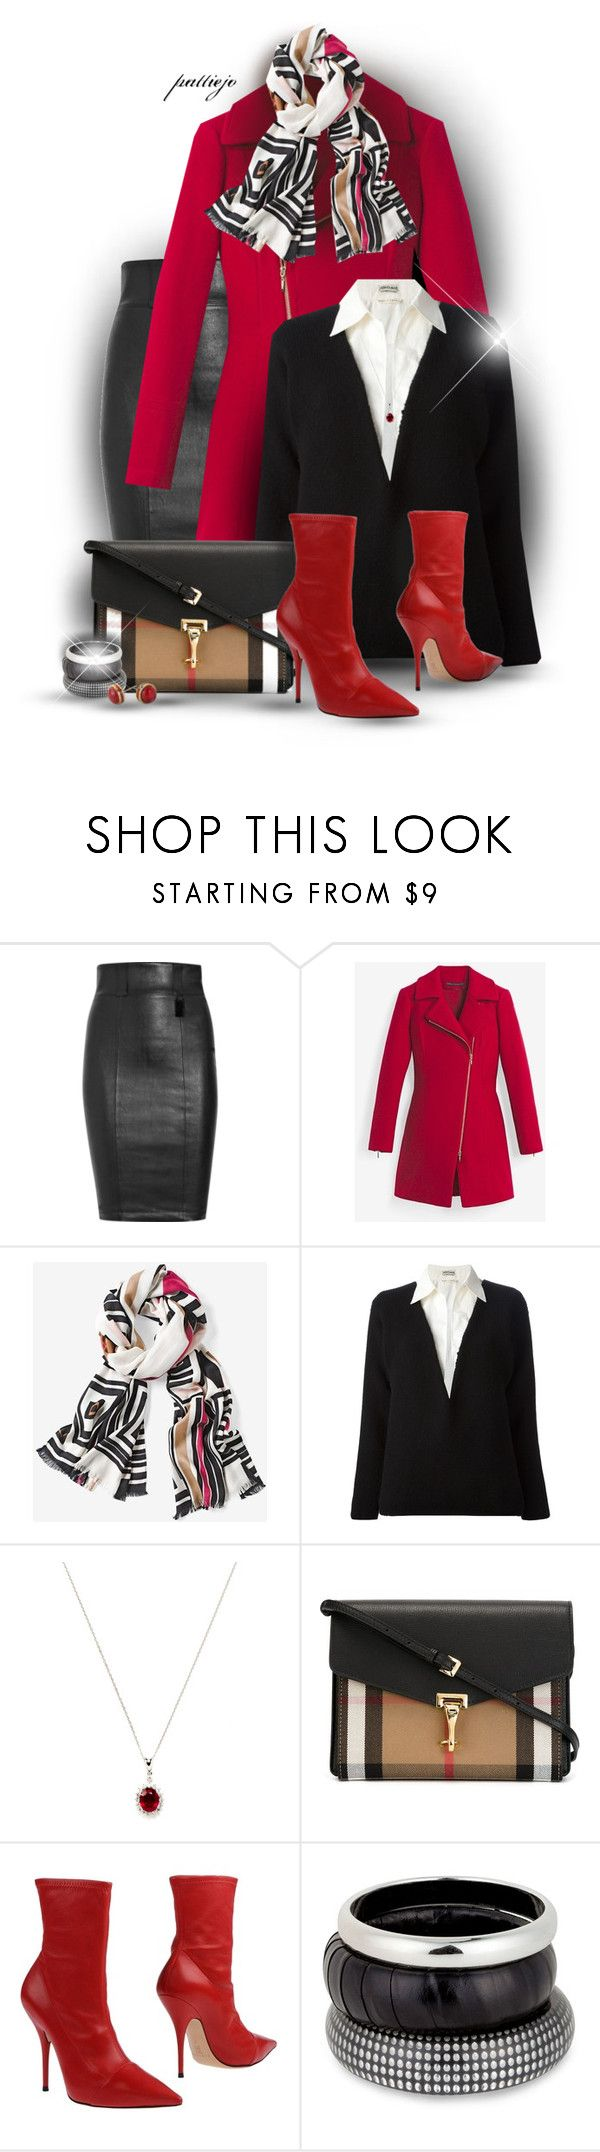 """""""Little Red Riding Coat"""" by rockreborn ❤ liked on Polyvore featuring Thomas Wylde, White House Black Market, Hermès, Vendoro, Burberry, Casadei and MOOD"""